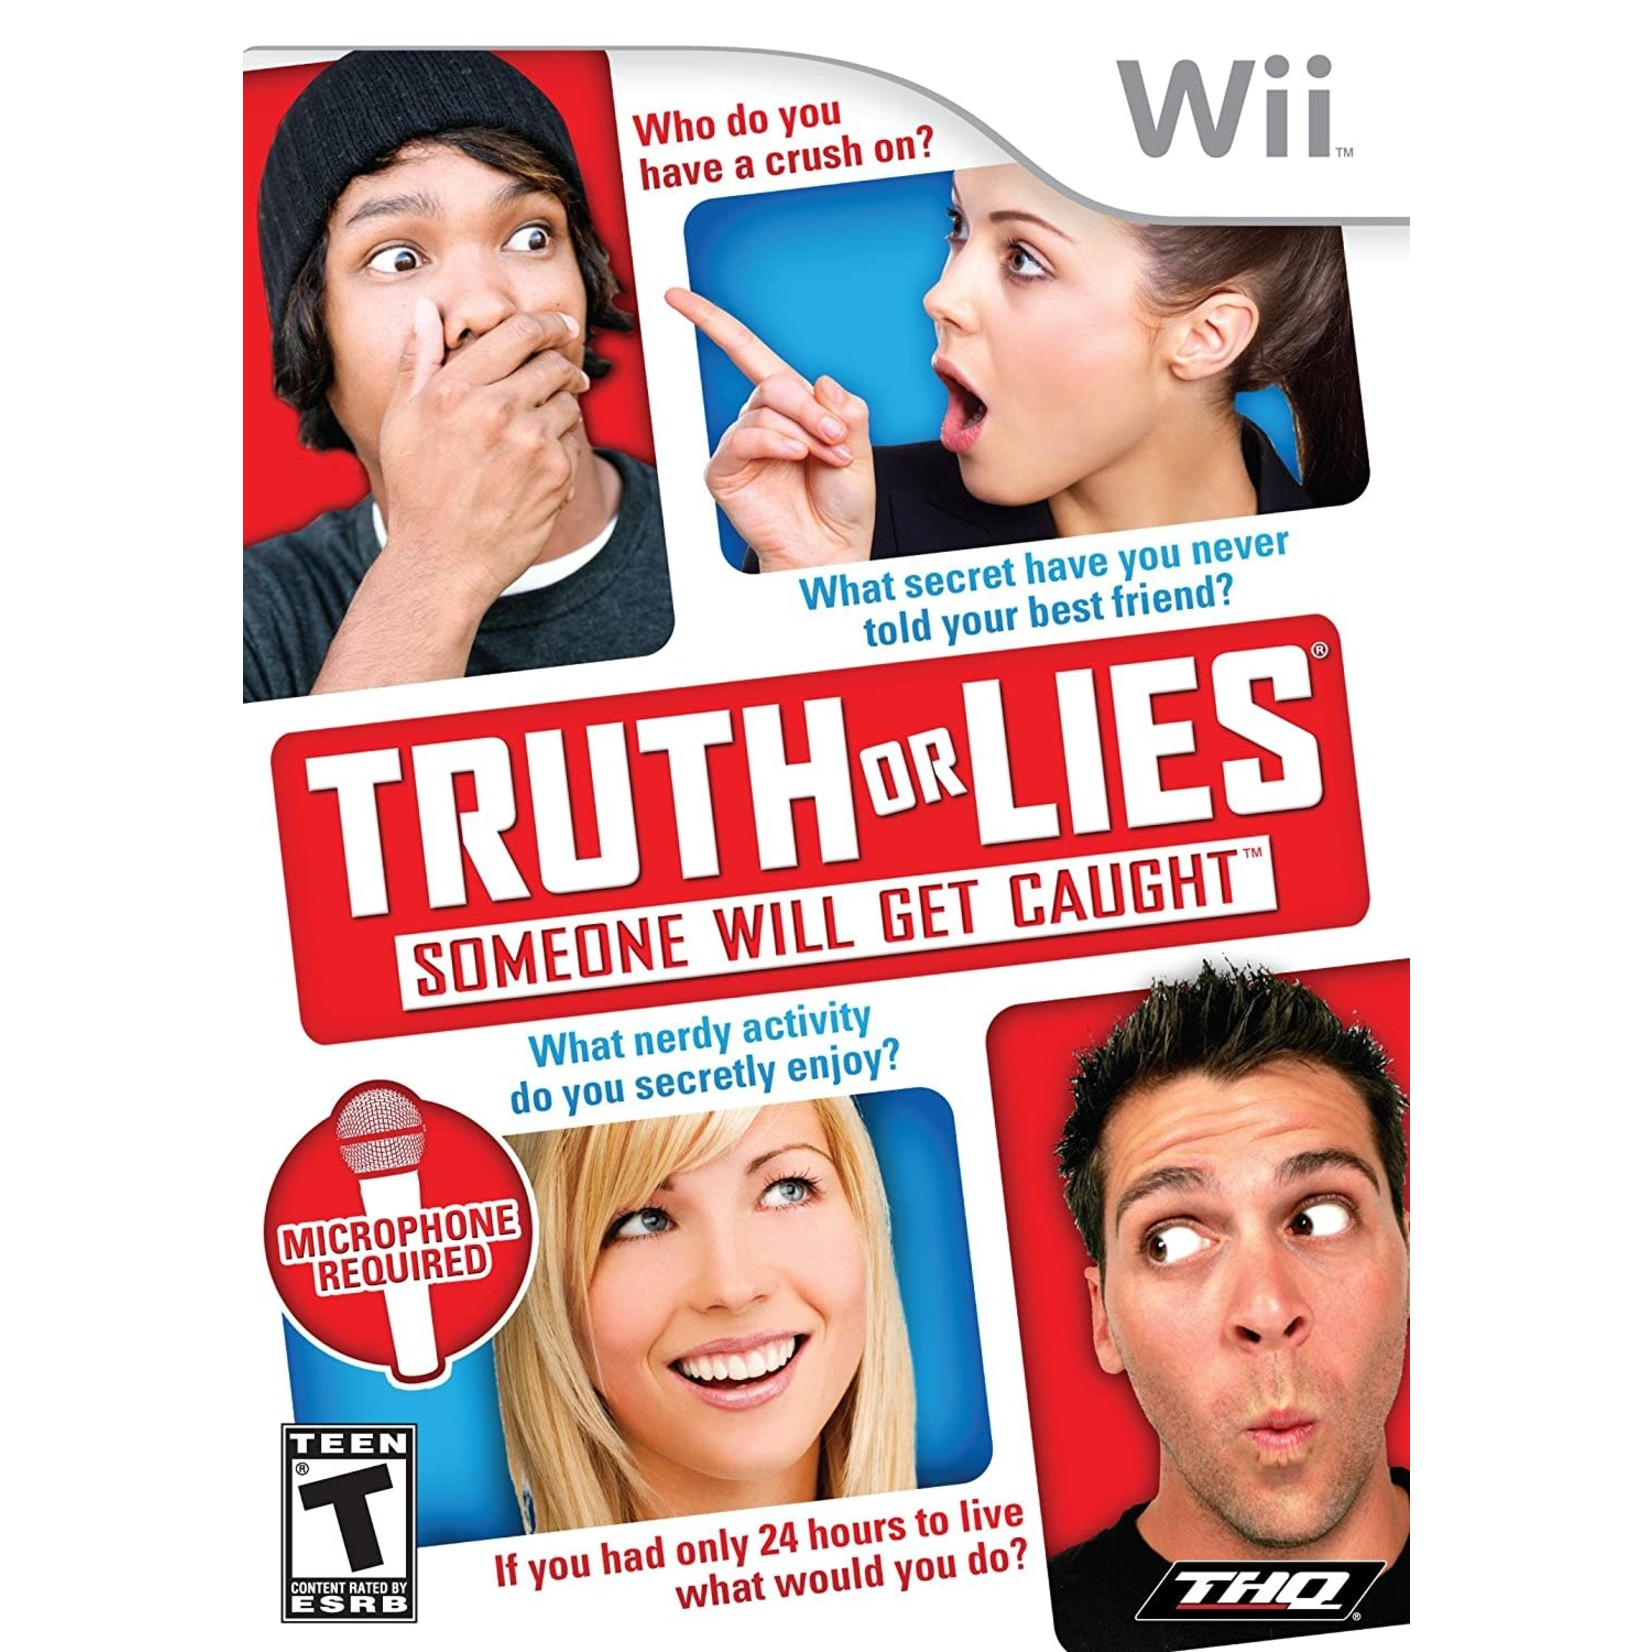 wiiusd-Truth or Lies